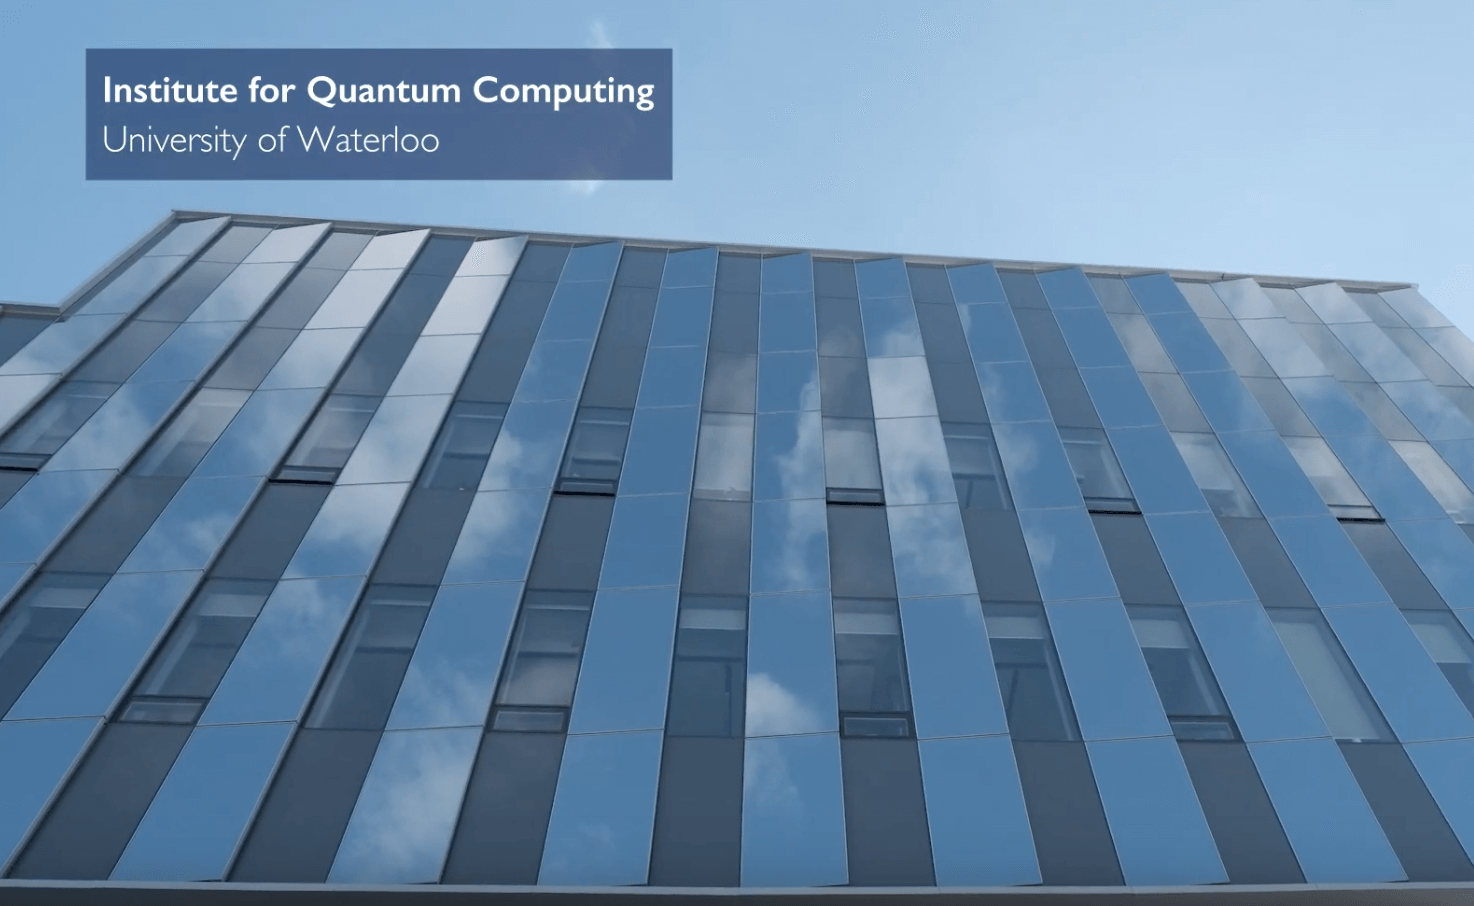 TQT Research Highlighted in IQC: Excellence in Quantum Research Video